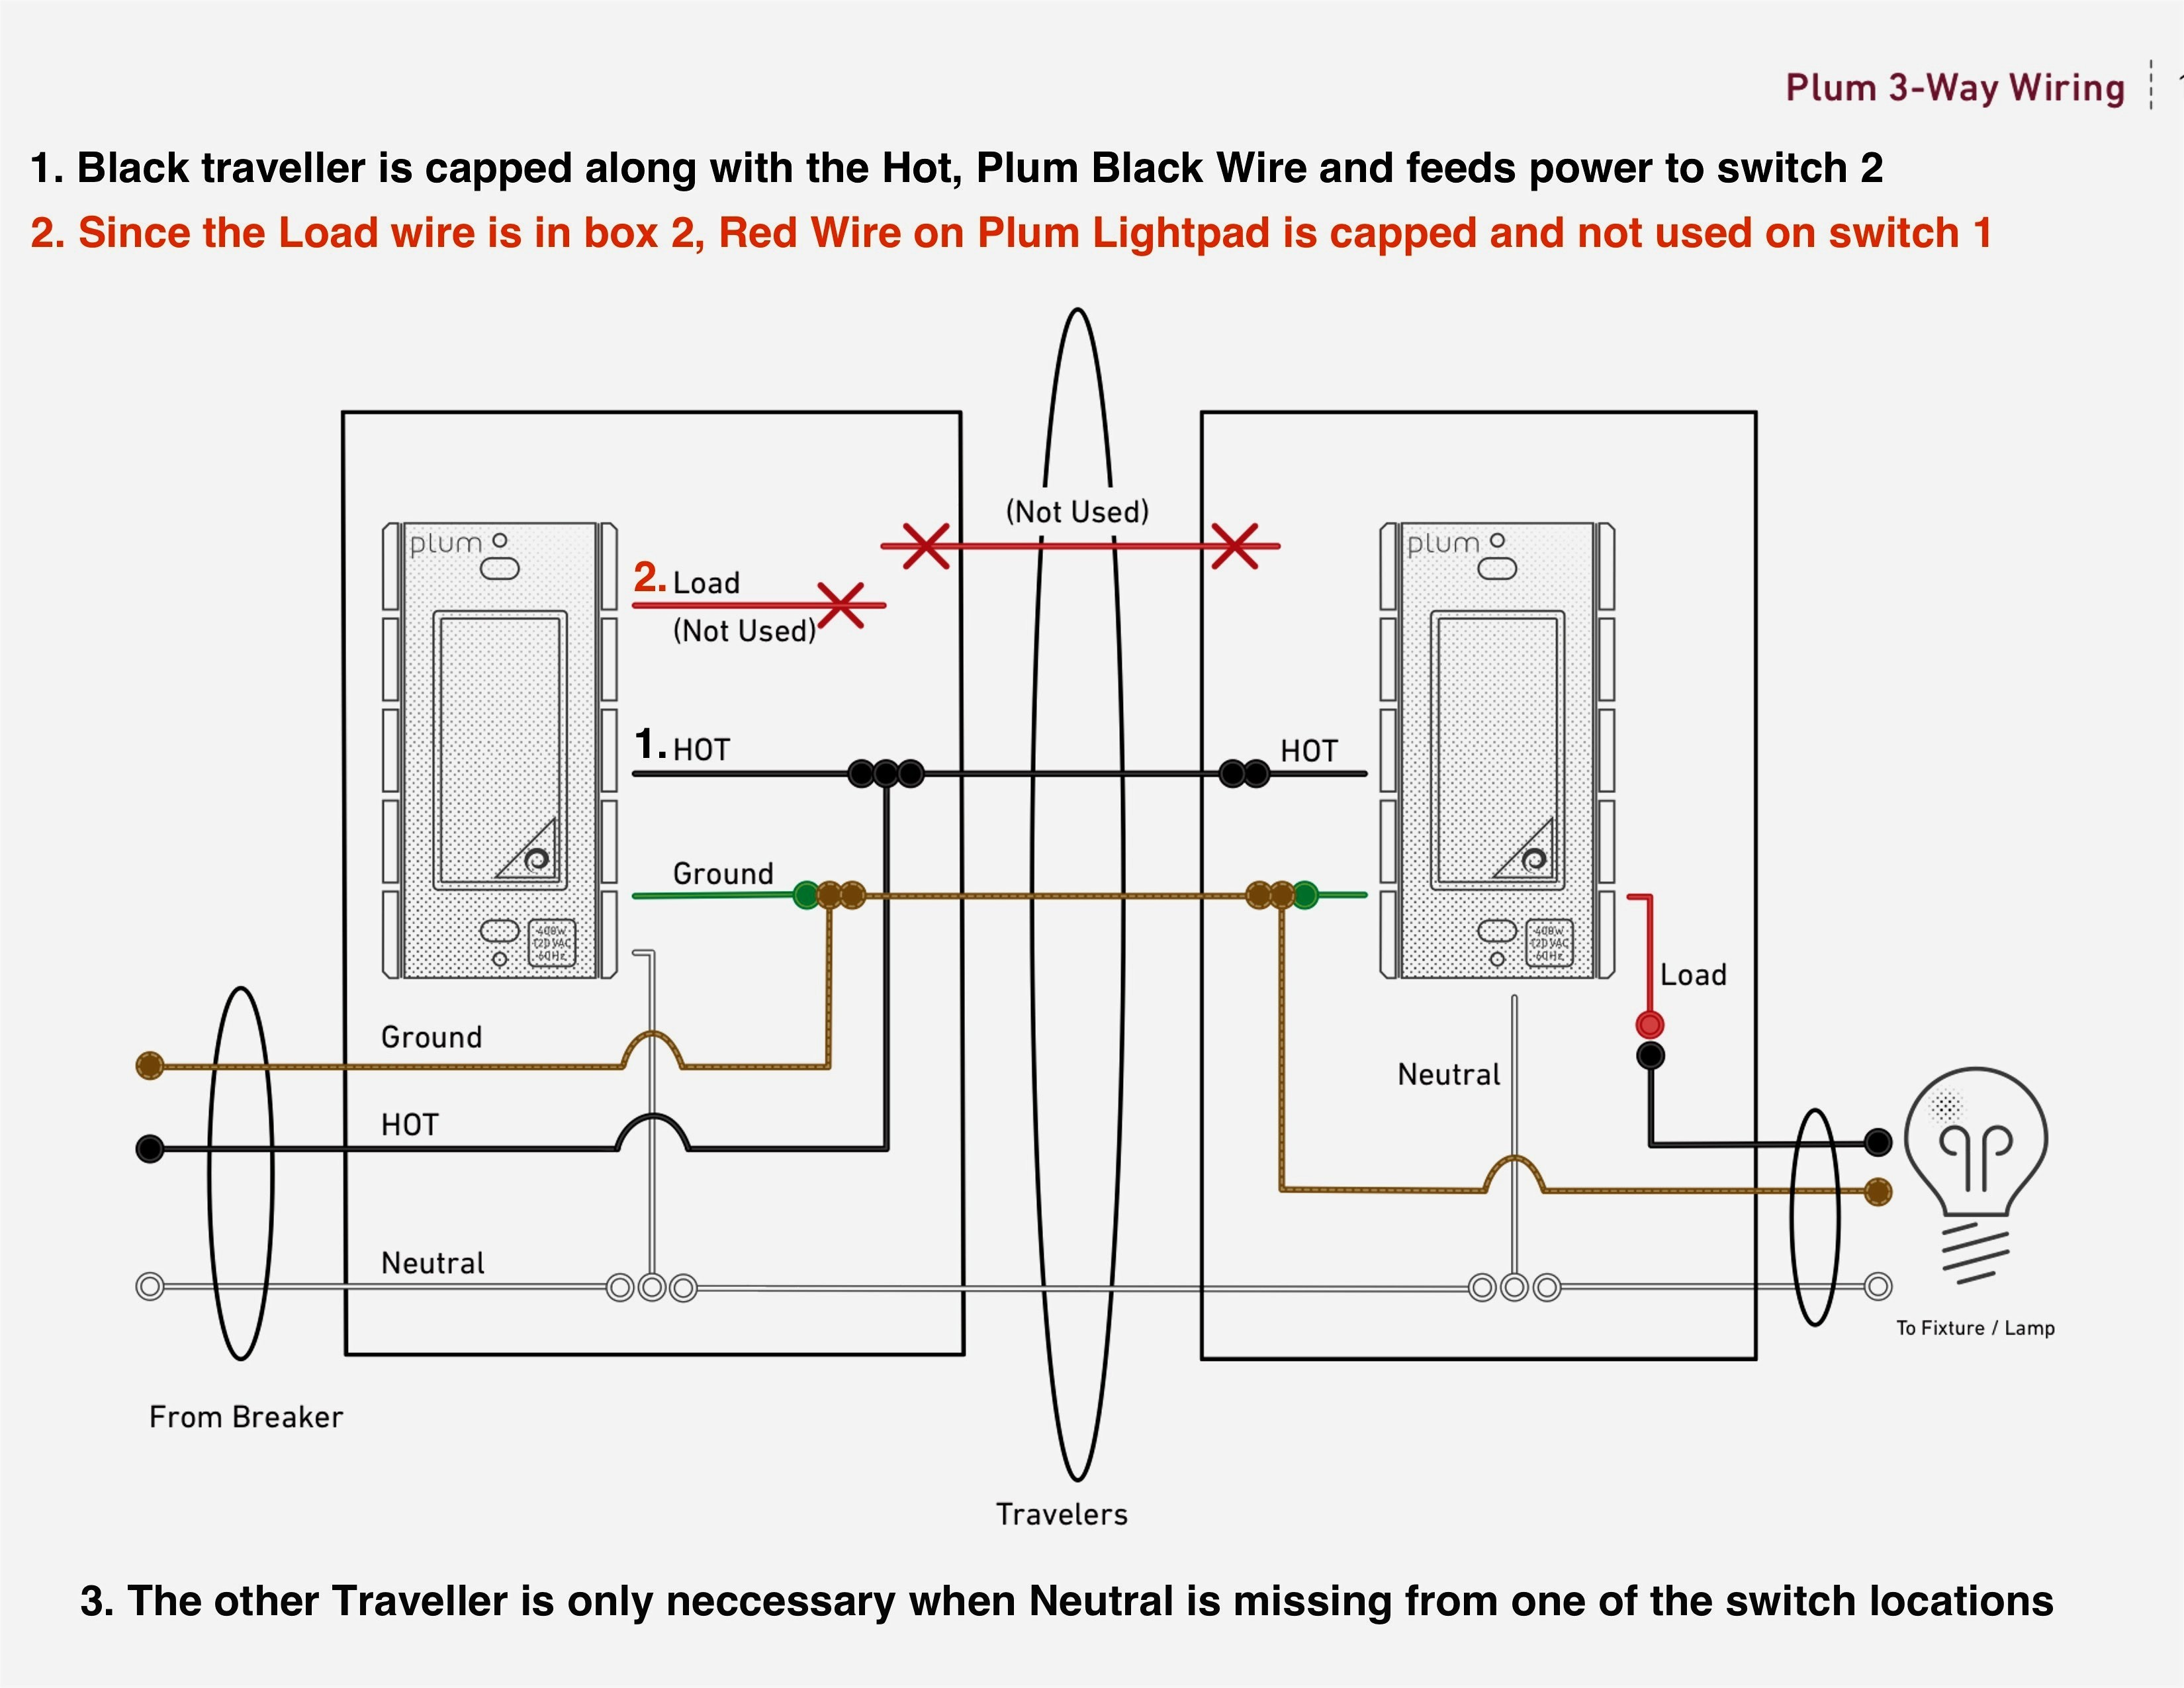 Leviton Dimmer Switch Wiring Diagram Leviton Three Way Dimmer Switch Wiring Diagram Gallery Of Leviton Dimmer Switch Wiring Diagram